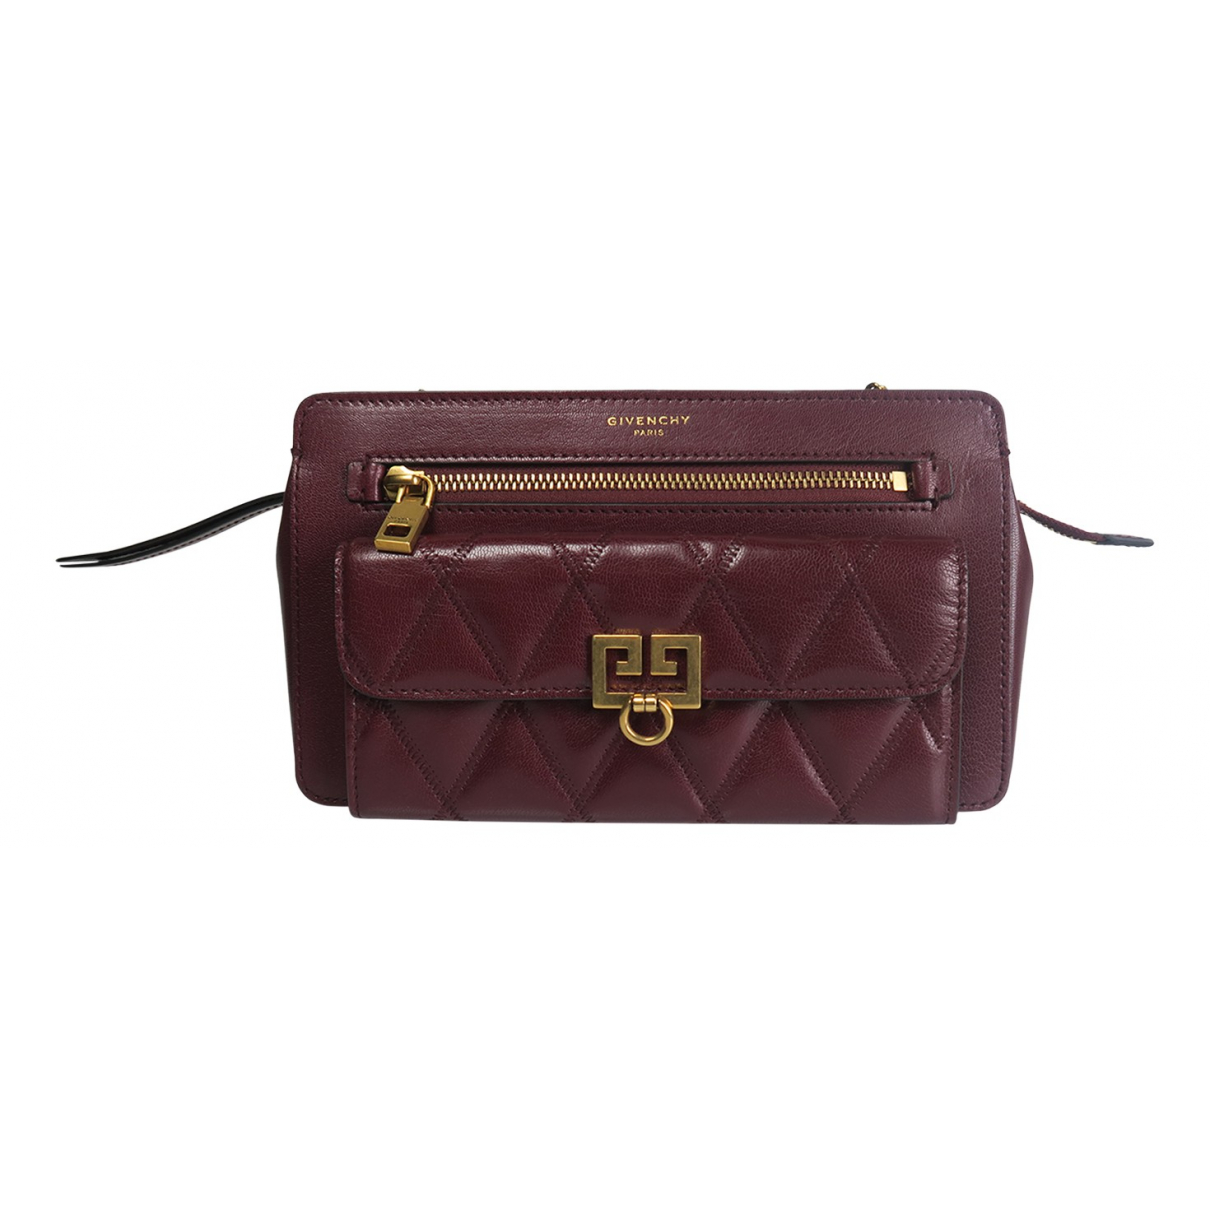 Givenchy N Purple Leather Clutch bag for Women N